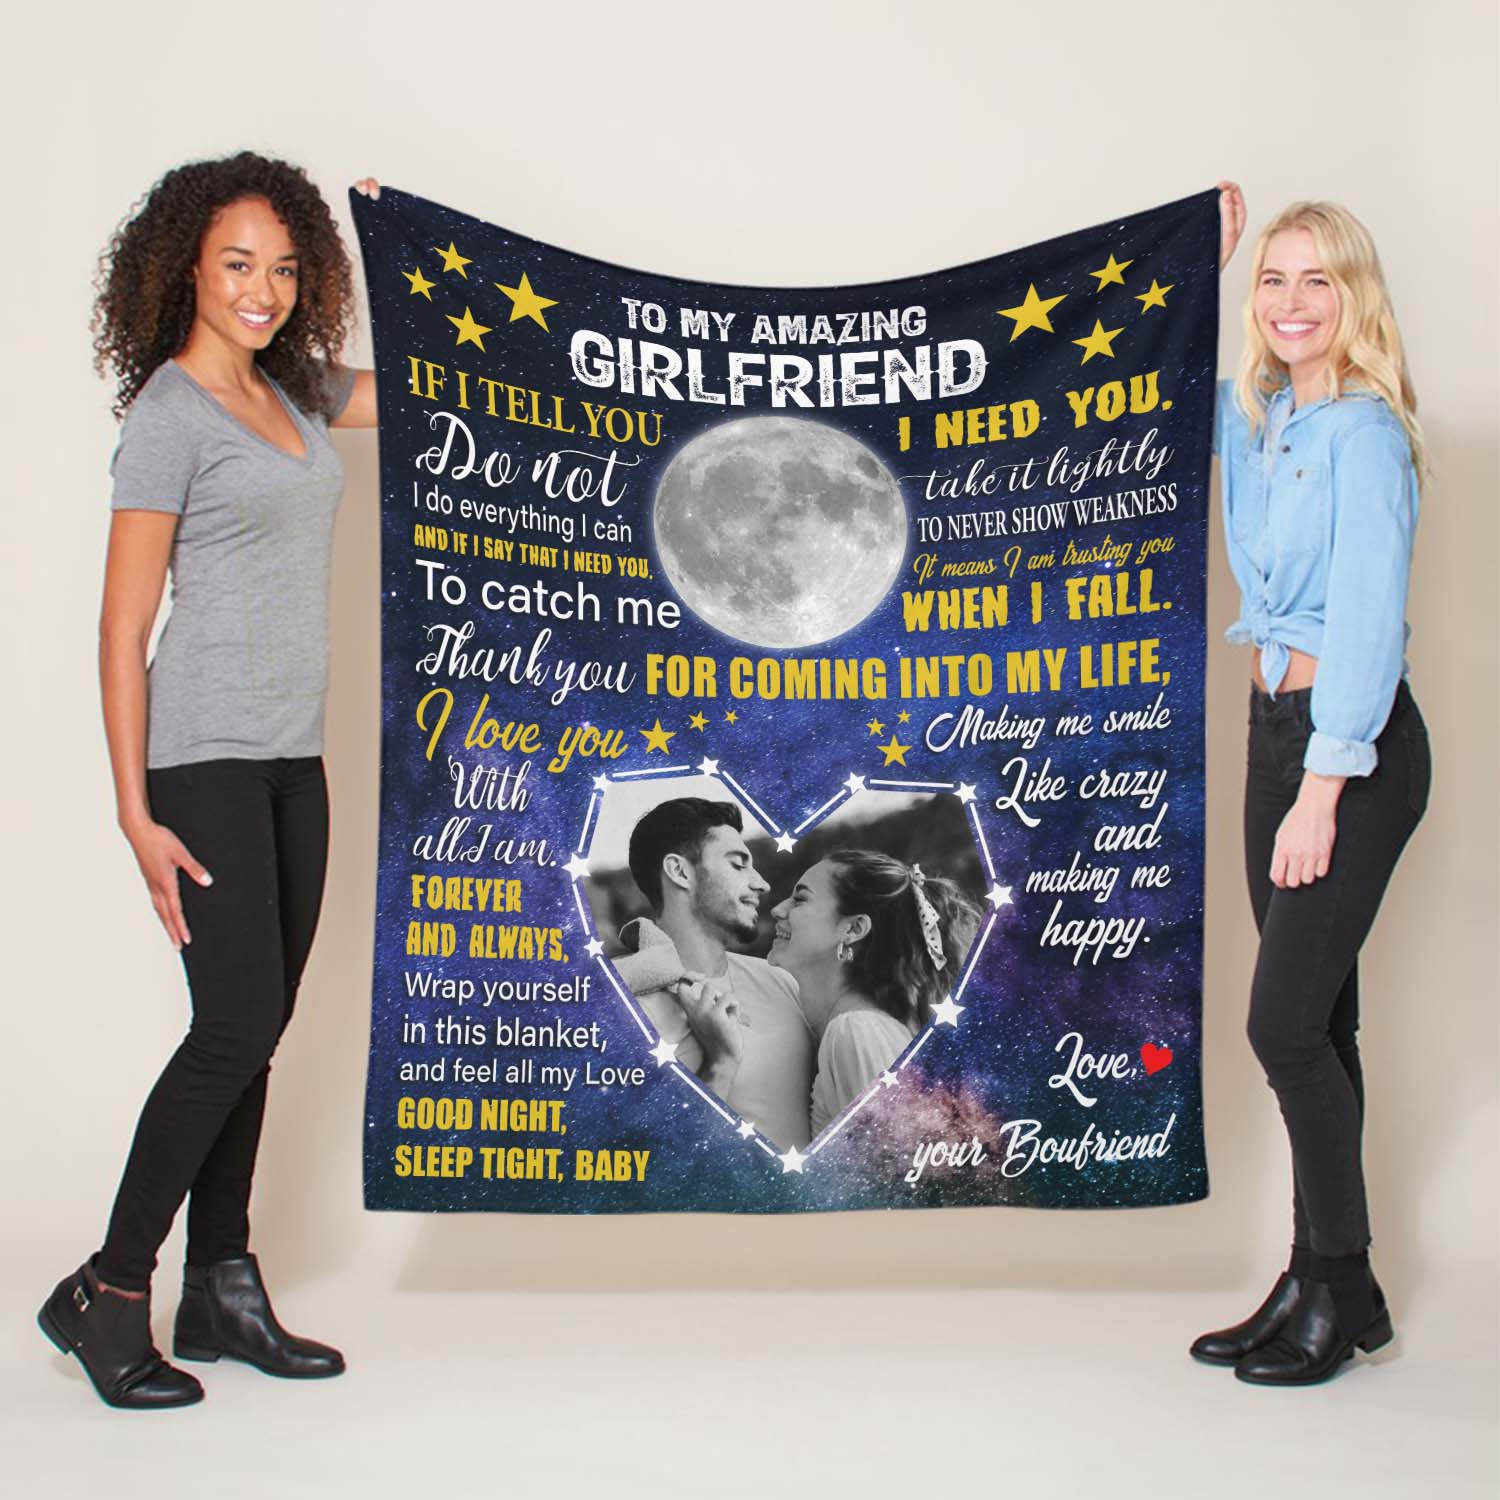 If you're looking for something extra romantic and sentimental for your lover, this custom letter blanket is a great gift idea. With deep love messages for her, your present can warm her body and her heart.